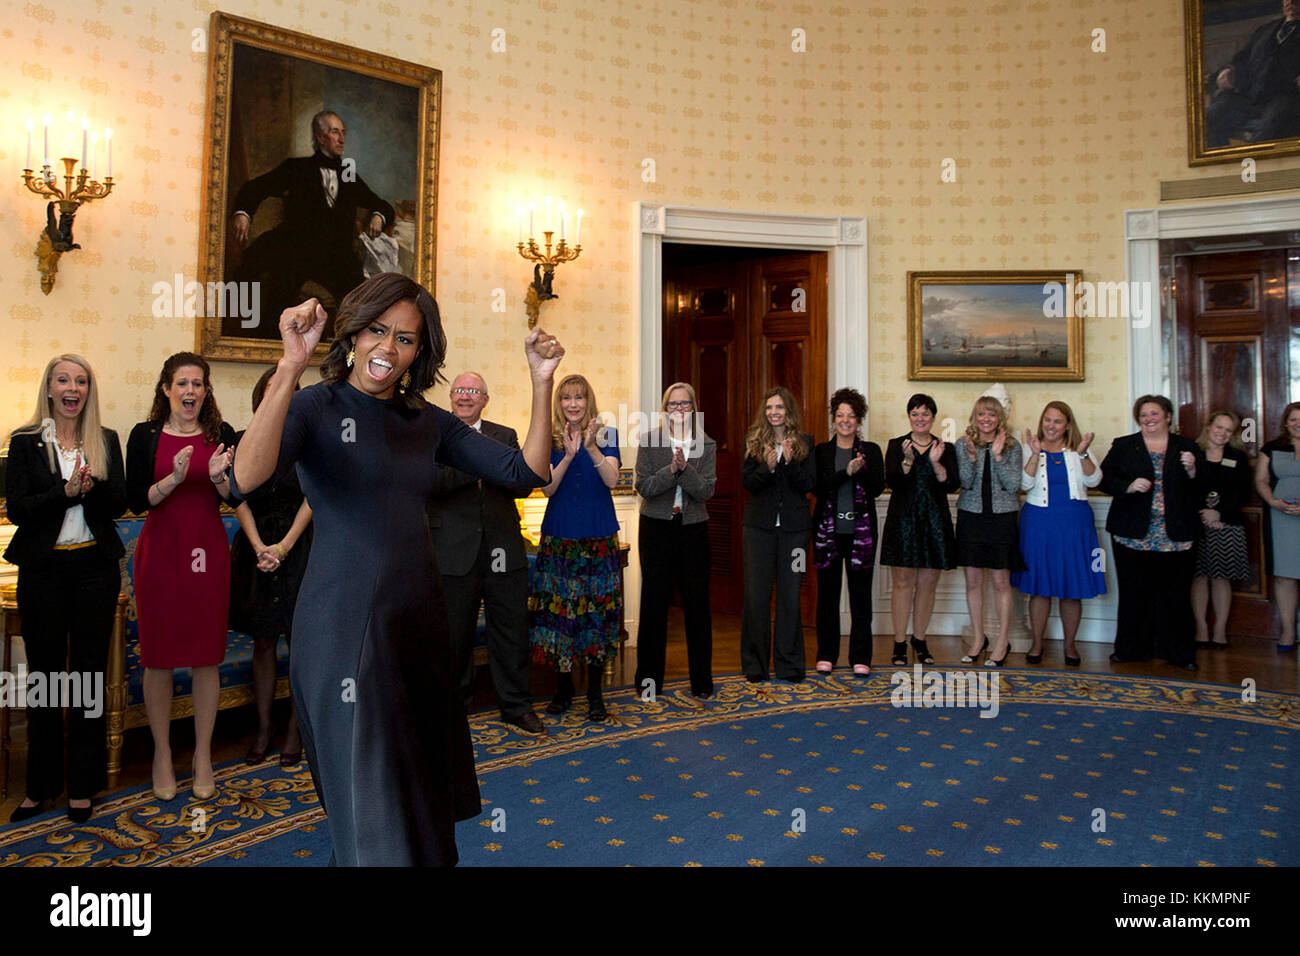 First Lady Michelle Obama cheers Counselor of the Year semi-finalists and finalists in the Blue Room prior to an - Stock Image